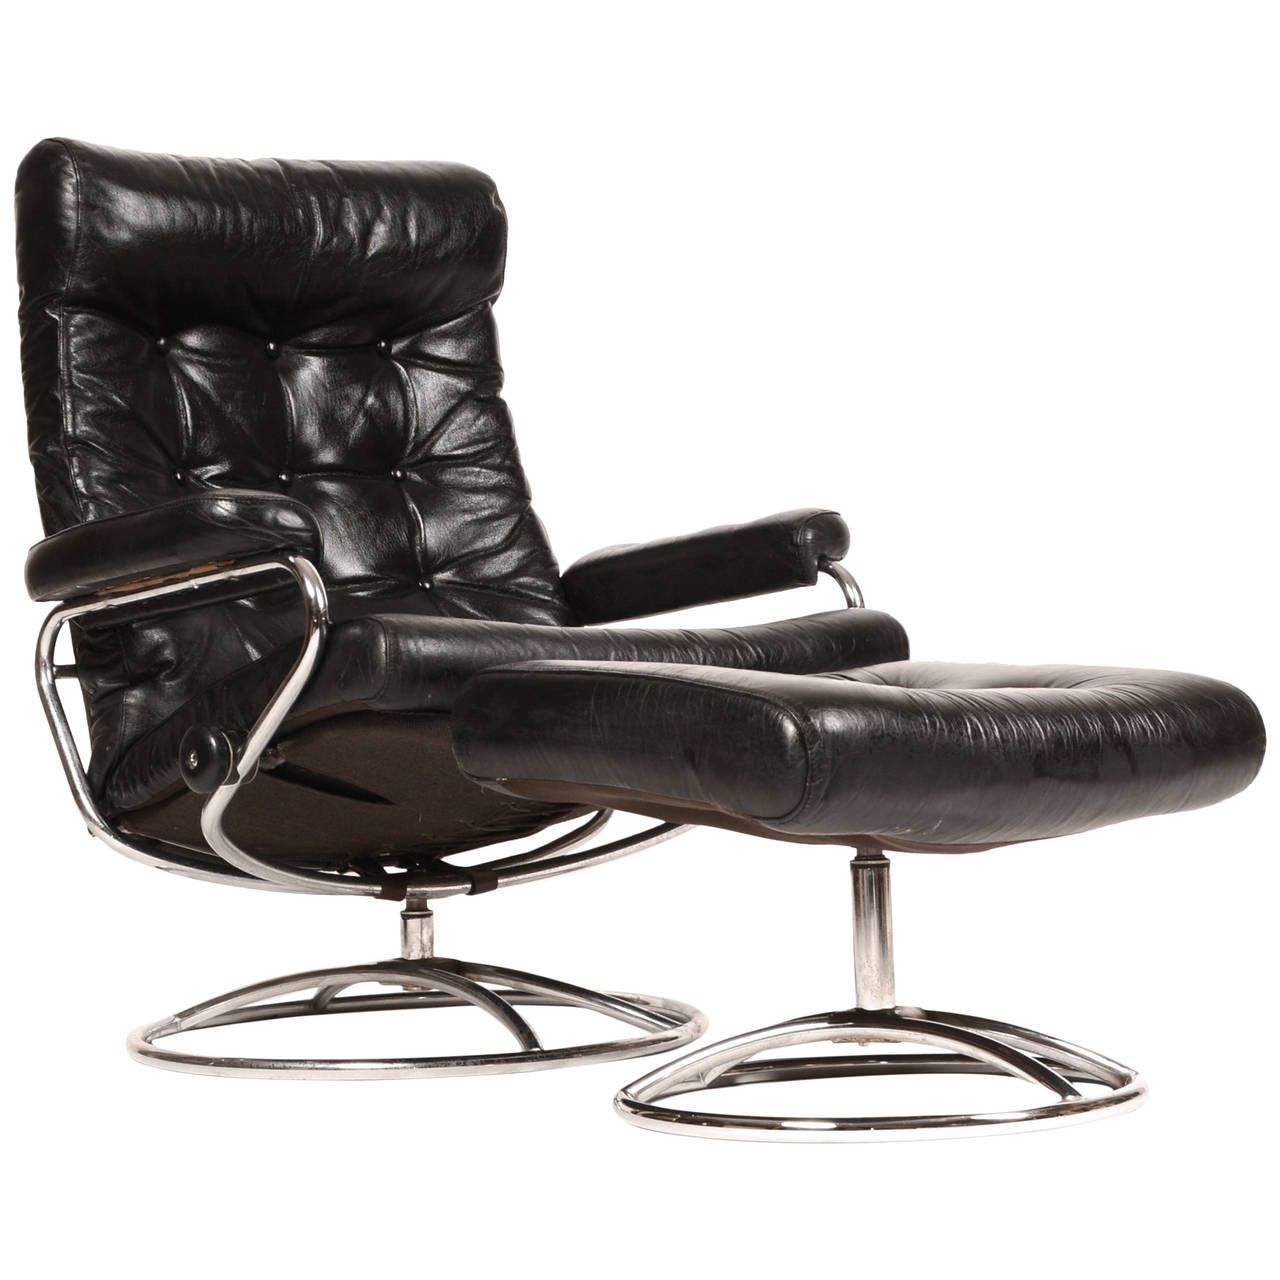 Charmant Reclining Stressless Lounge Chair And Ottoman By Ekornes | Find Your  Stressless At Copenhagen Imports In Sarasota, FL. Or Visit  Www.copenhagen Imports.com